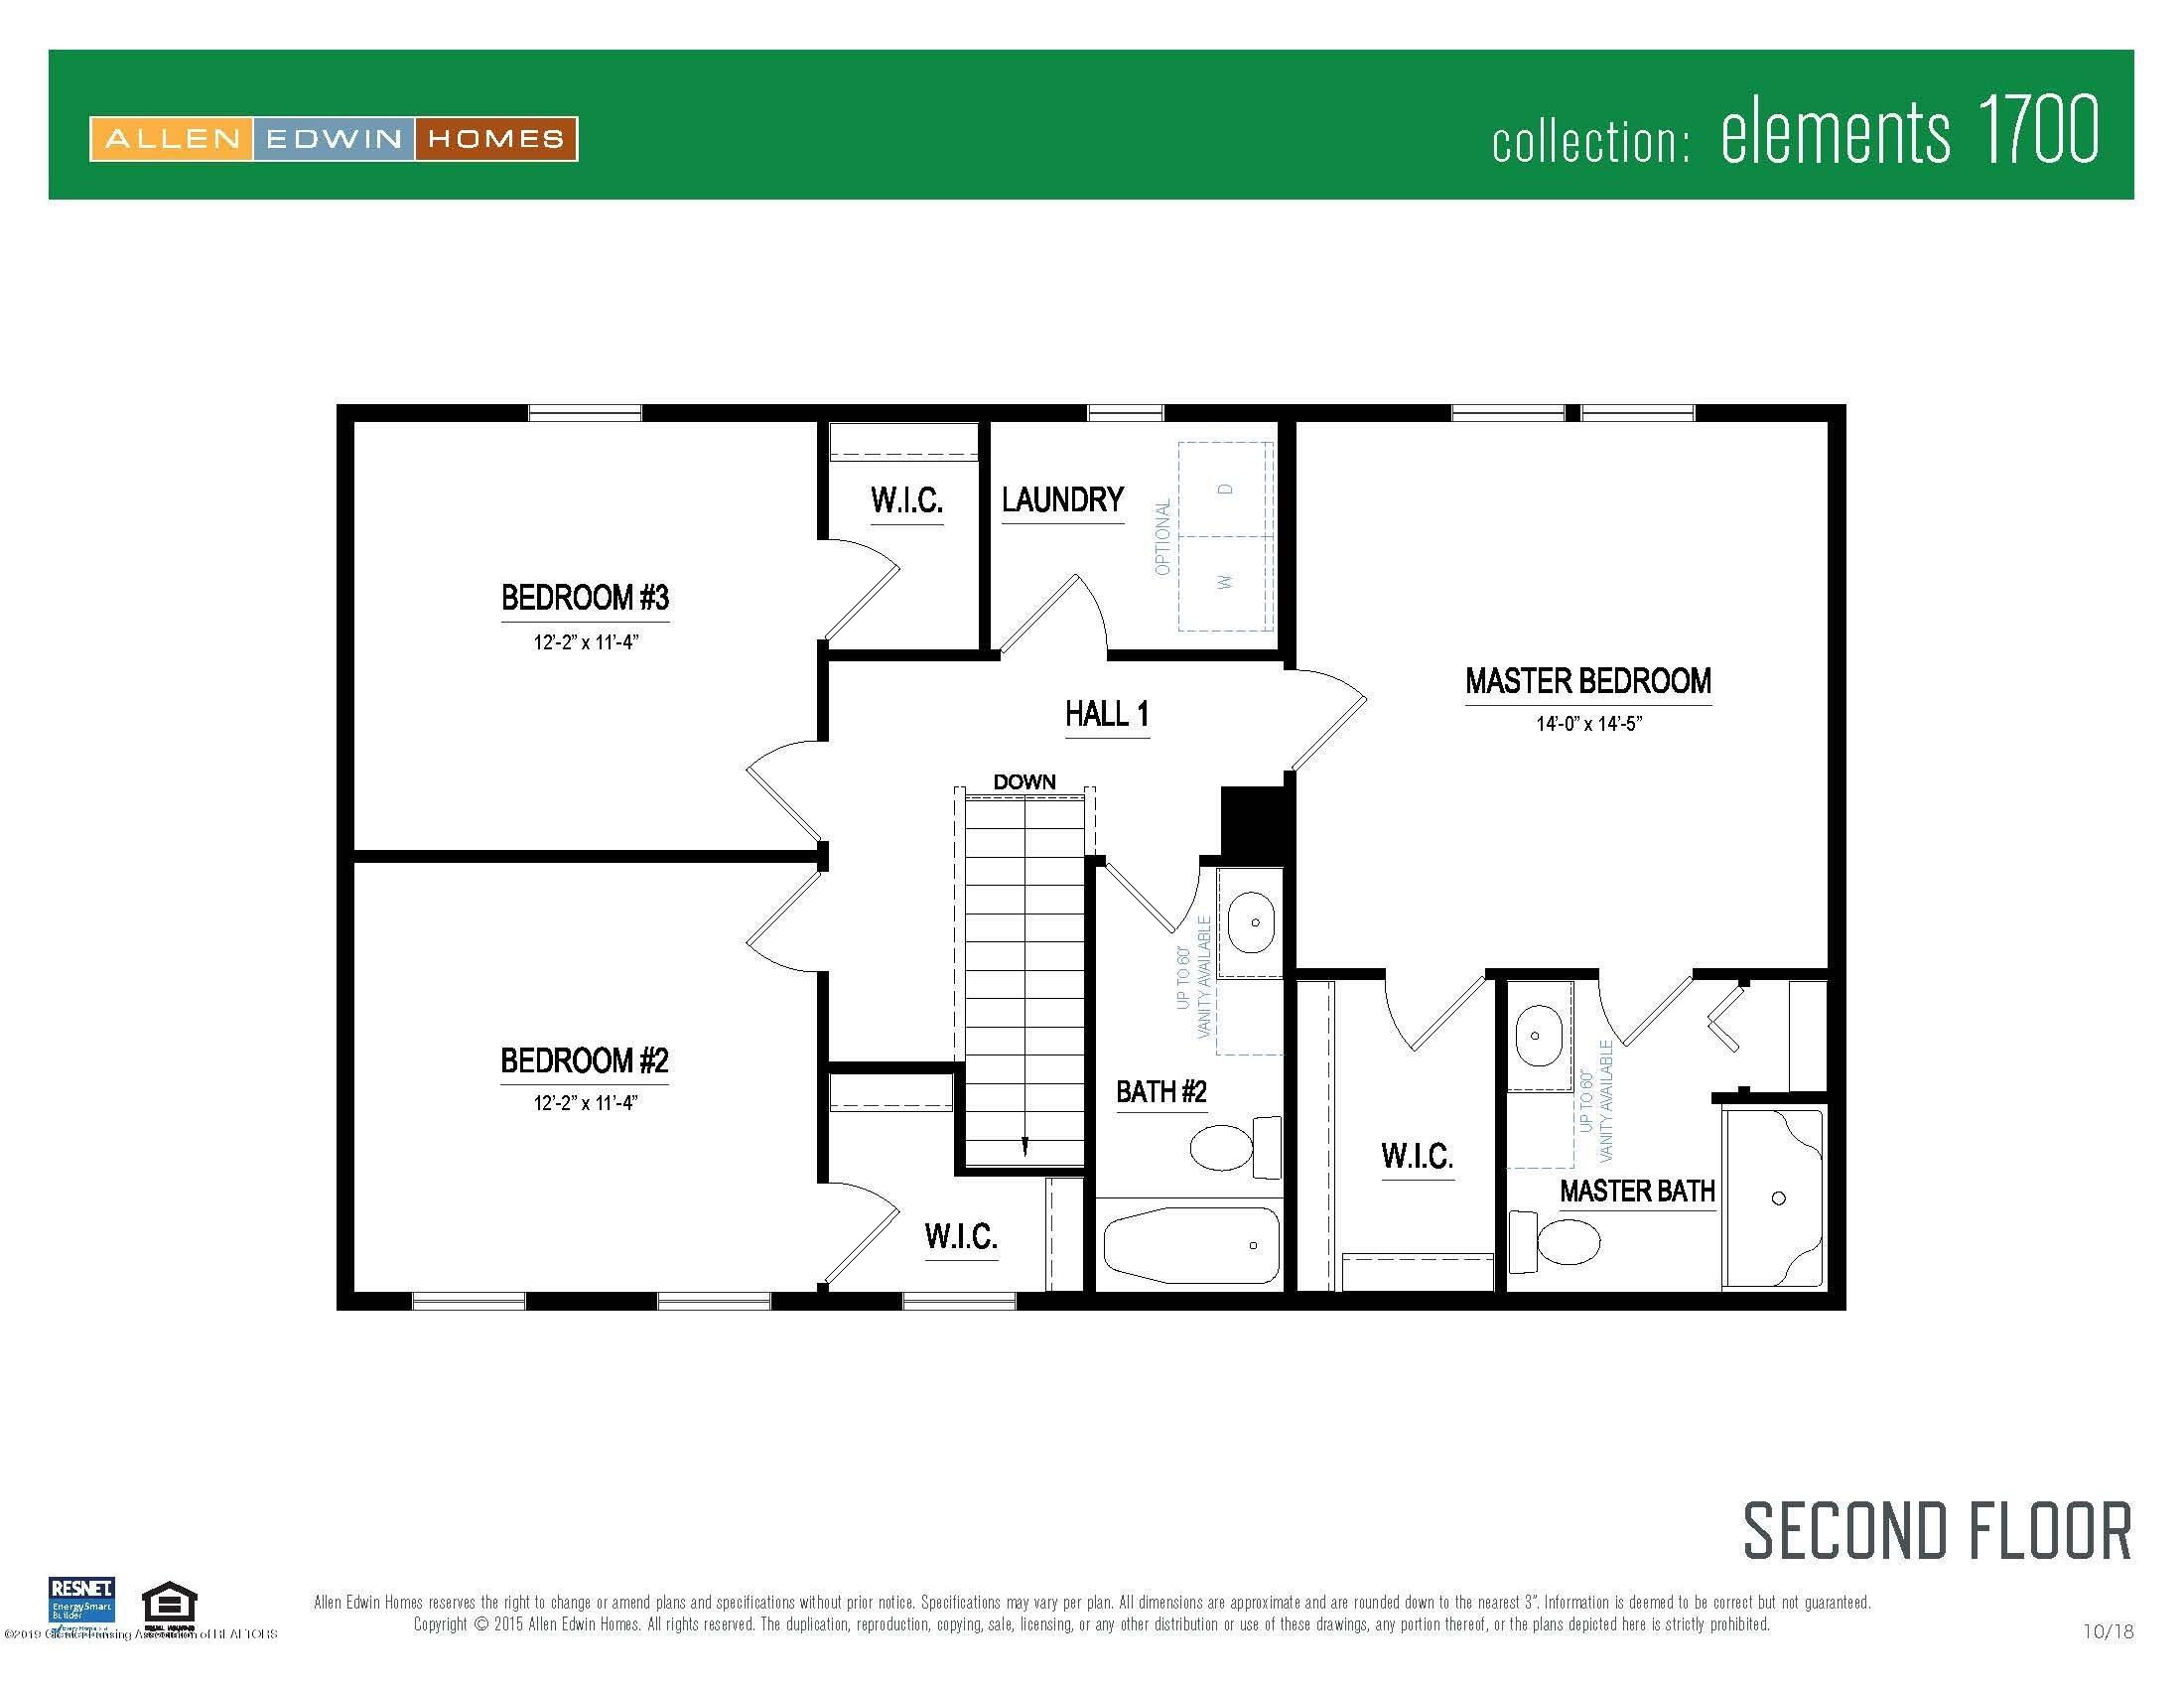 1013 Chesham - Elements 1700 V8.0a Second Floor - 3